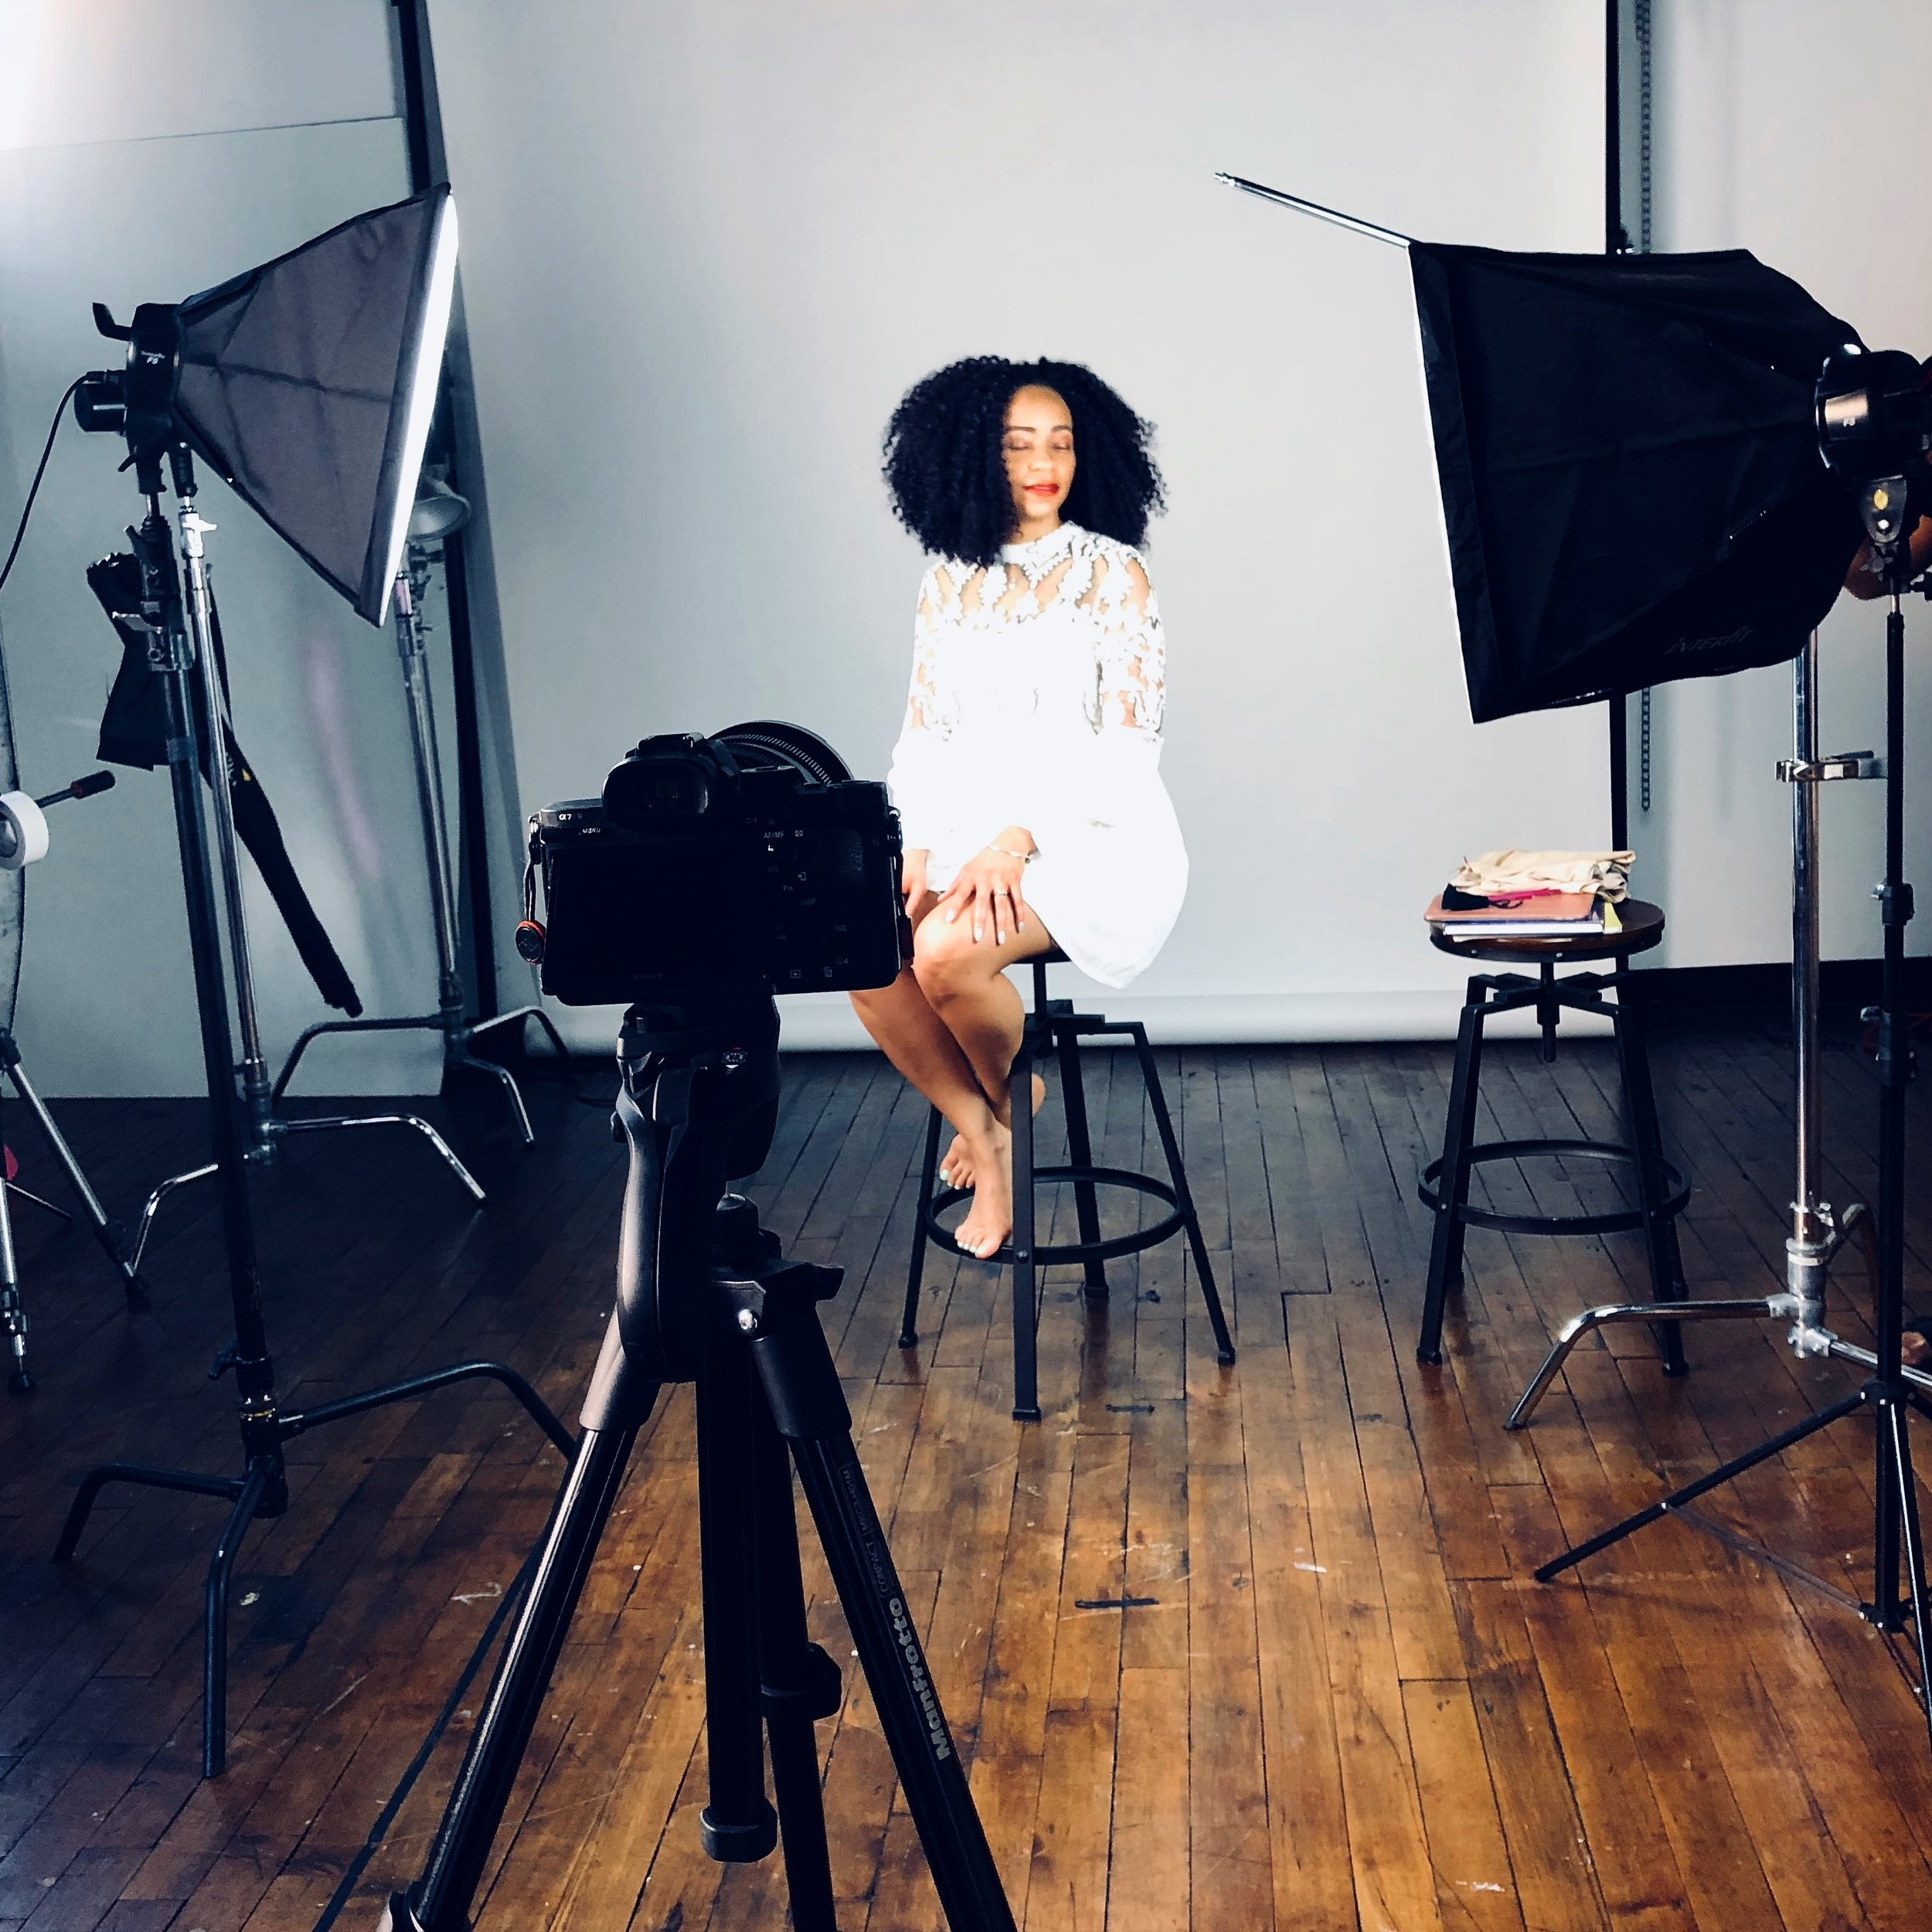 A noteworthy brand - Spoken Word Artist, Canden Webb is an Author, Entertainer, Consultant and Media Influencer.She devotes her time to helping millennial creatives build powerful careers while producing content that inspires and positively influences the culture.